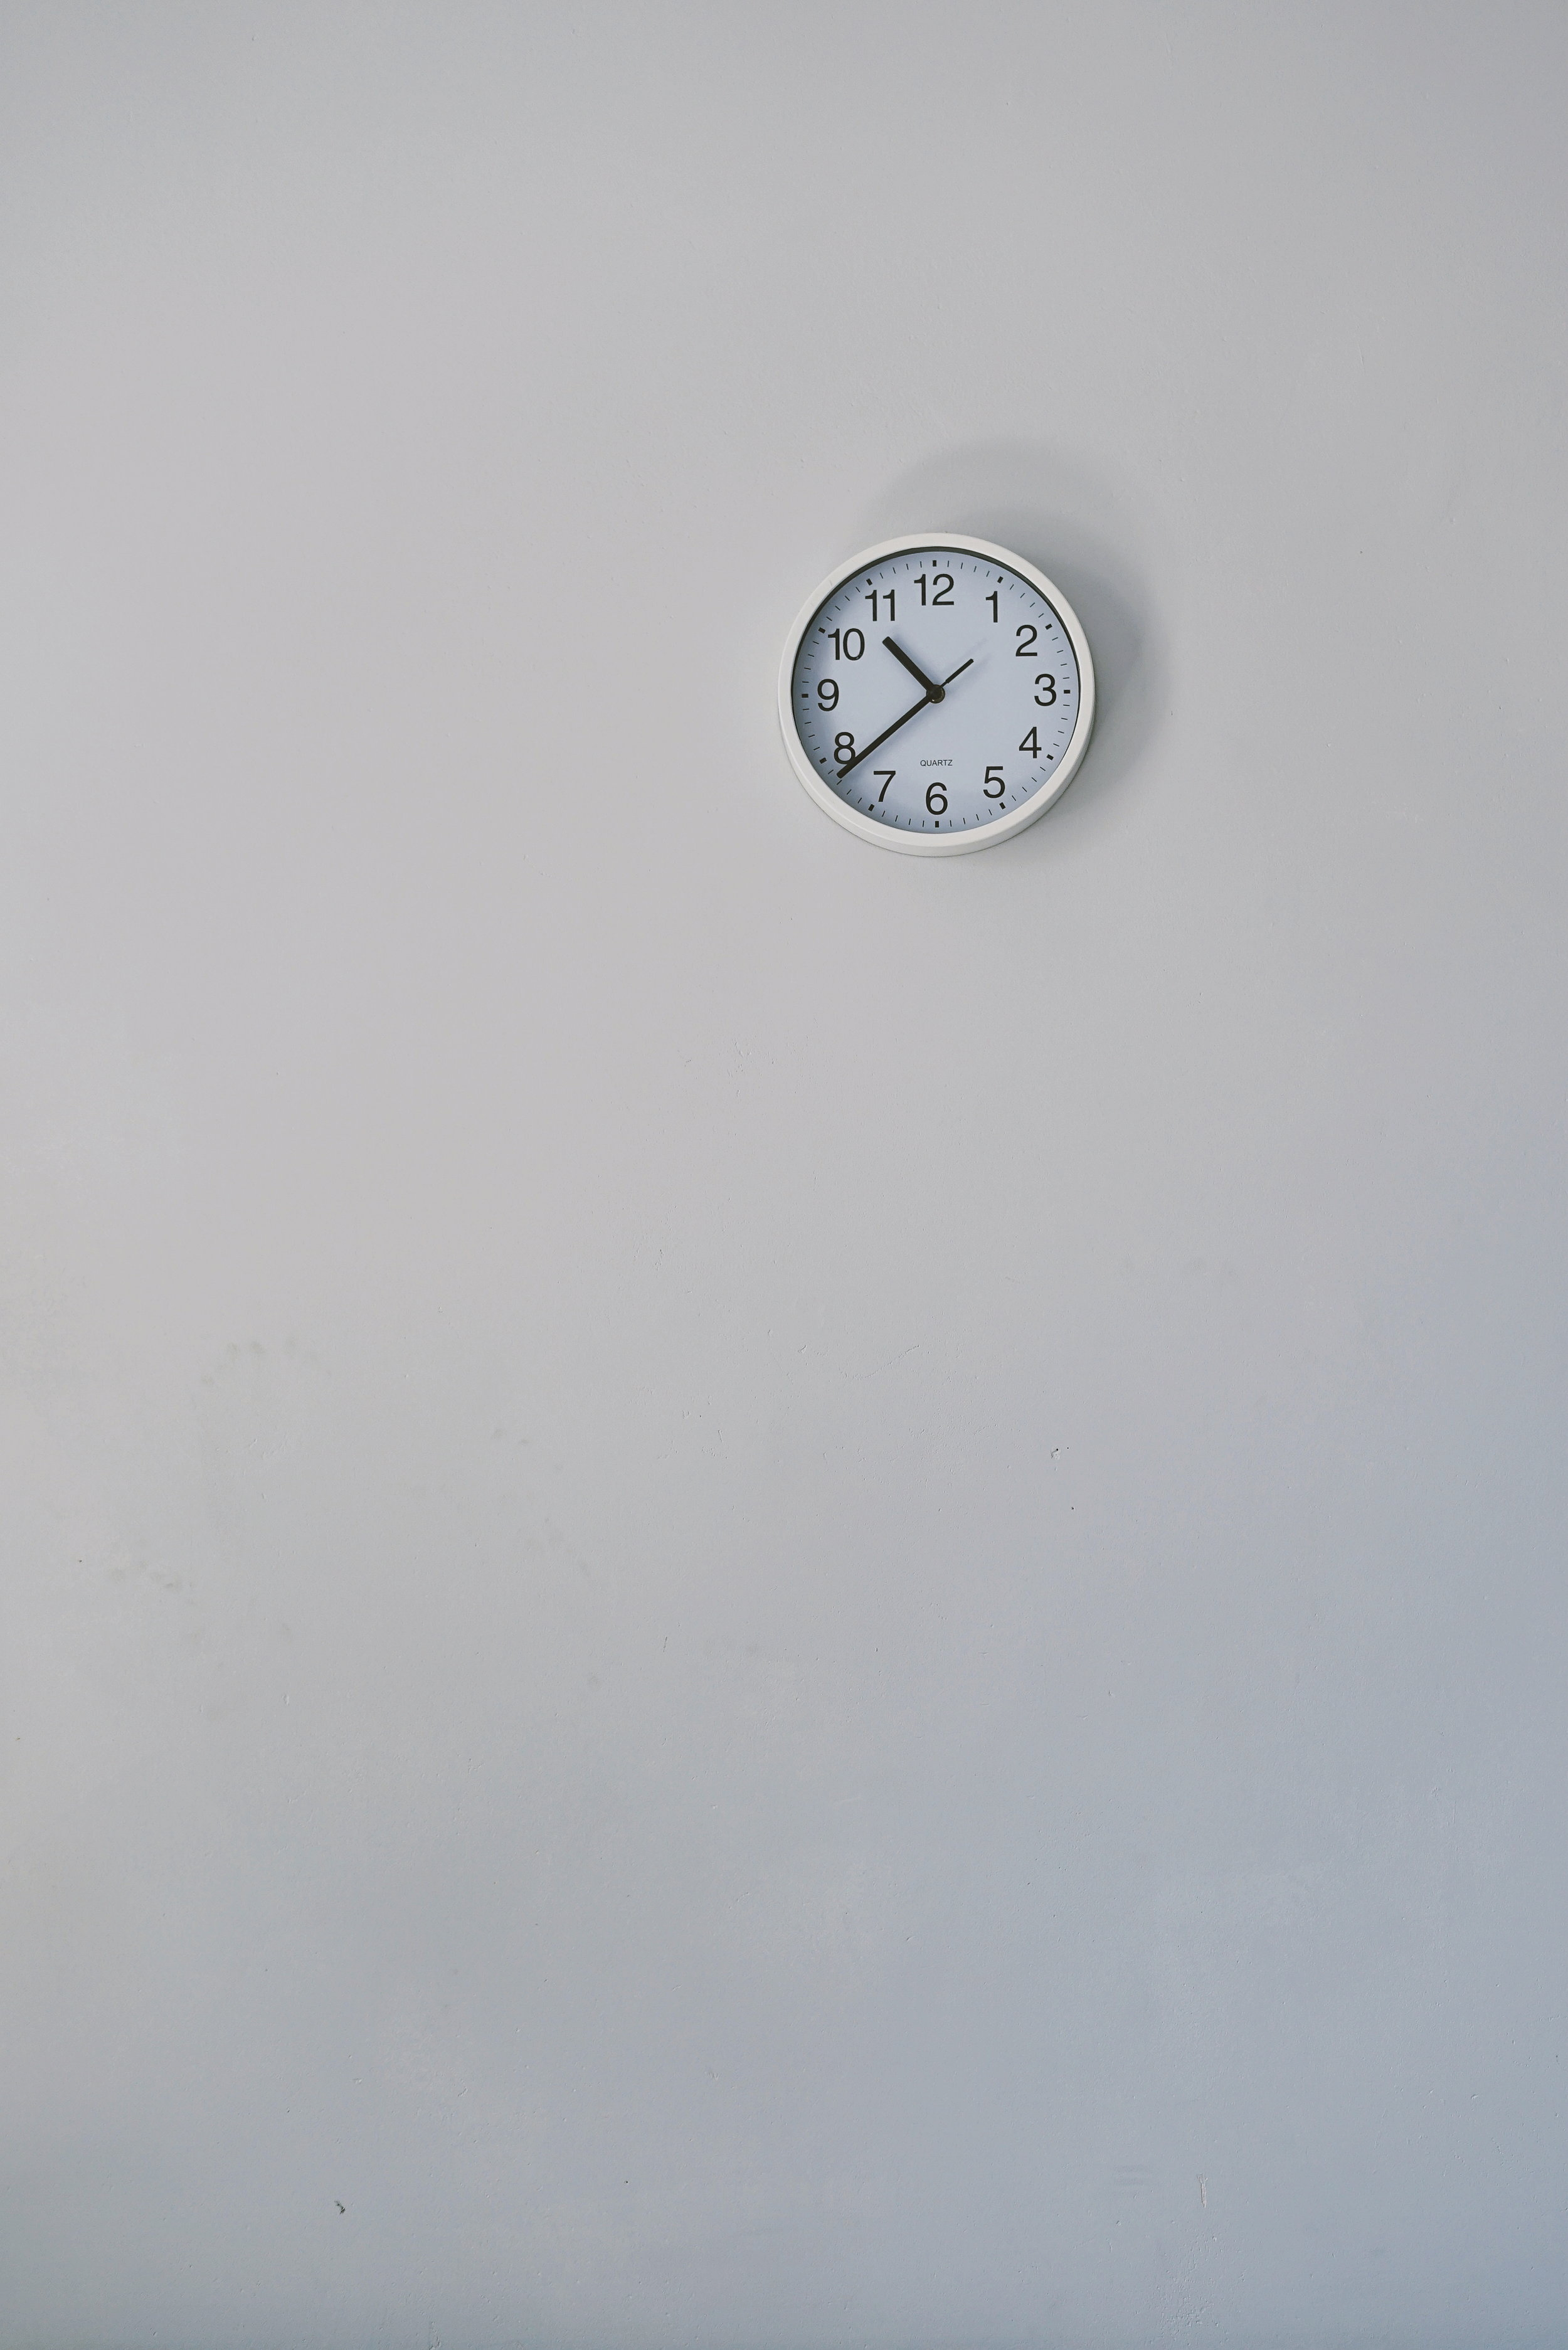 Set a Timer - If the idea of cleaning your closet seems daunting, try setting a 15min timer. Do as much as you can in that short amount of time and see how much you can accomplish!